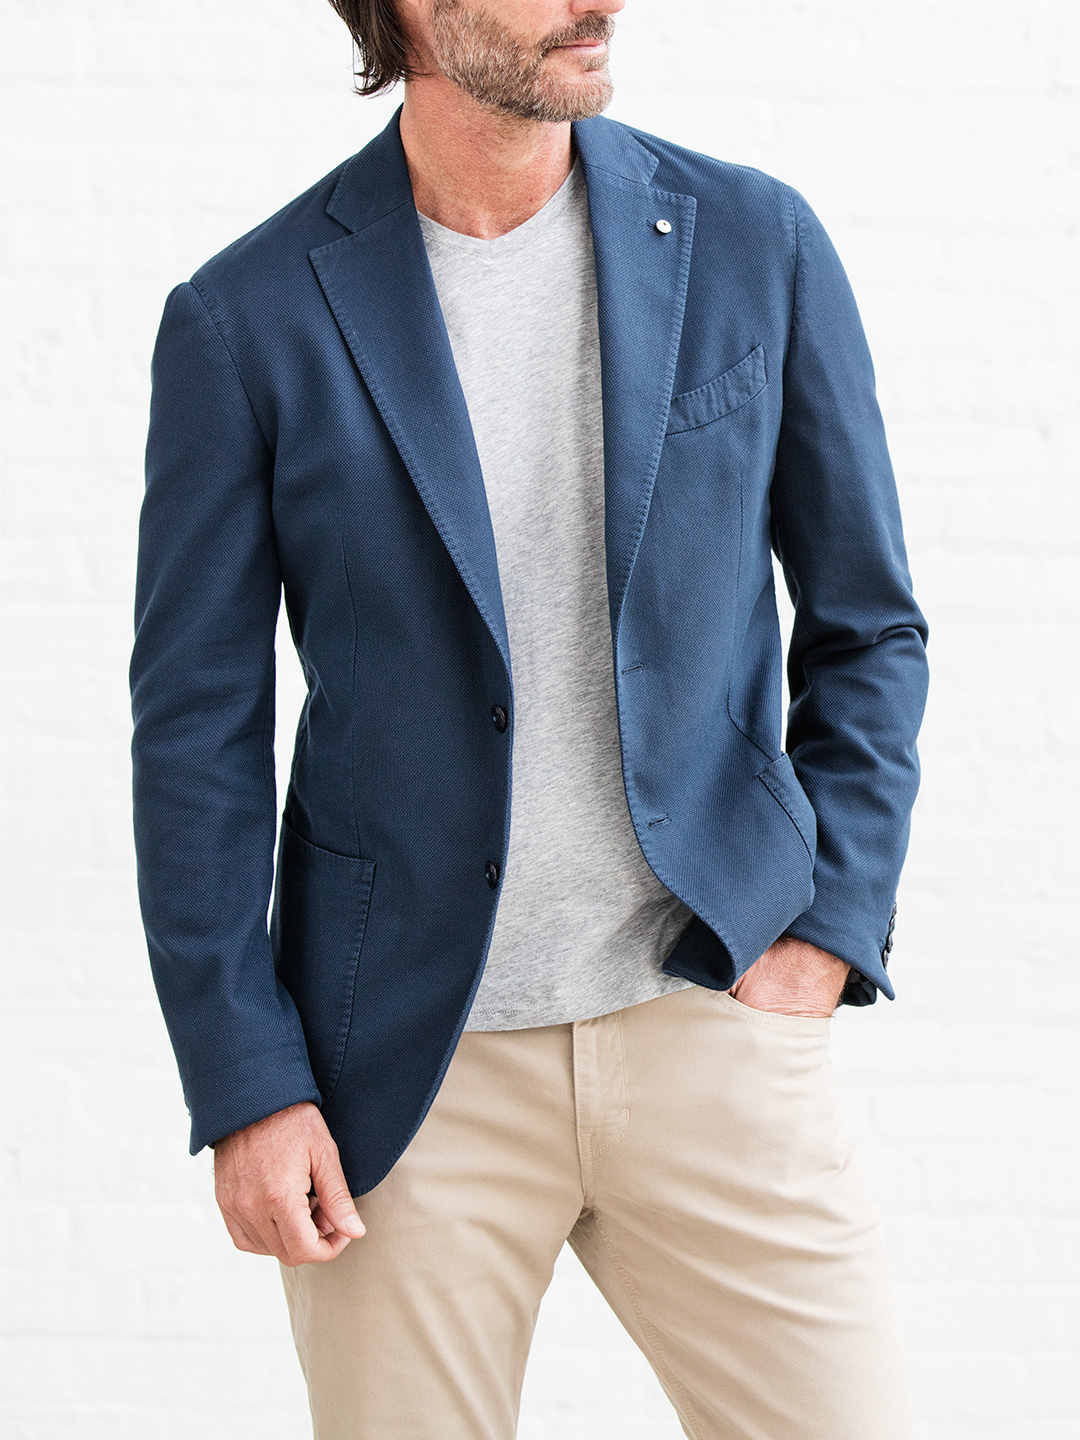 Summer style guide - Trunk Club